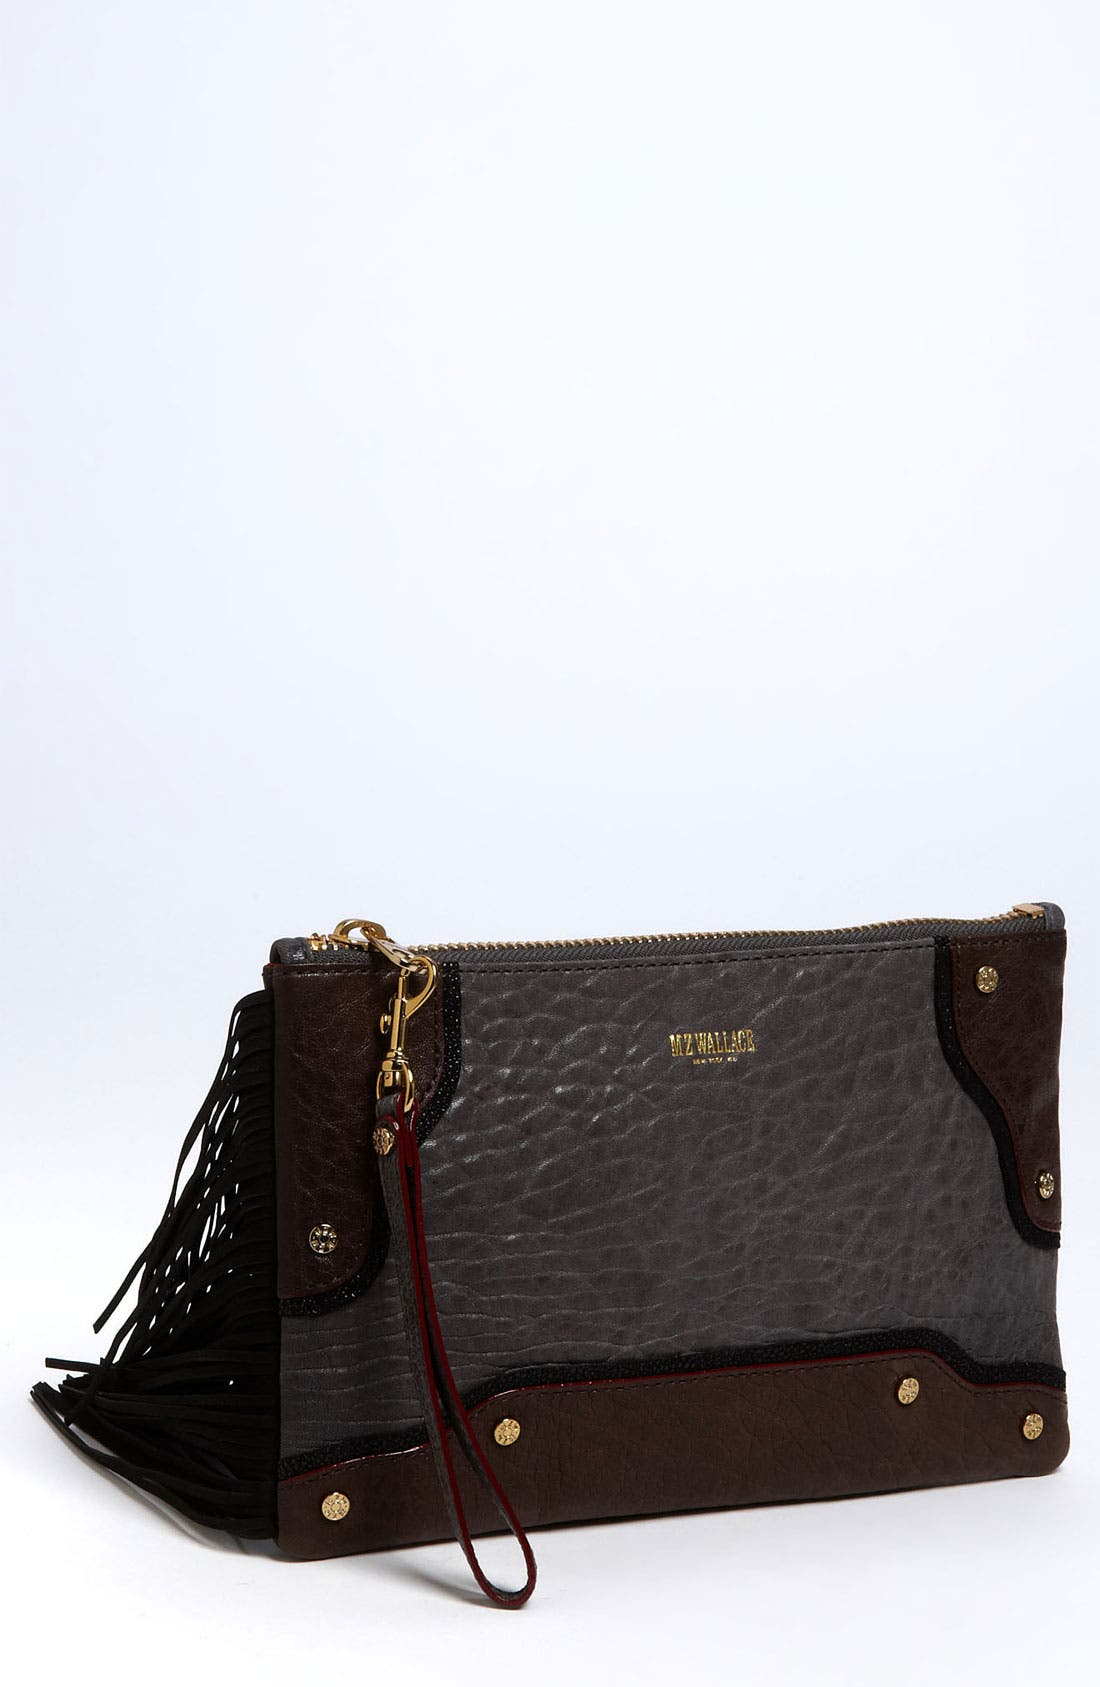 Main Image - MZ Wallace 'Hamish' Mixed Leather Clutch